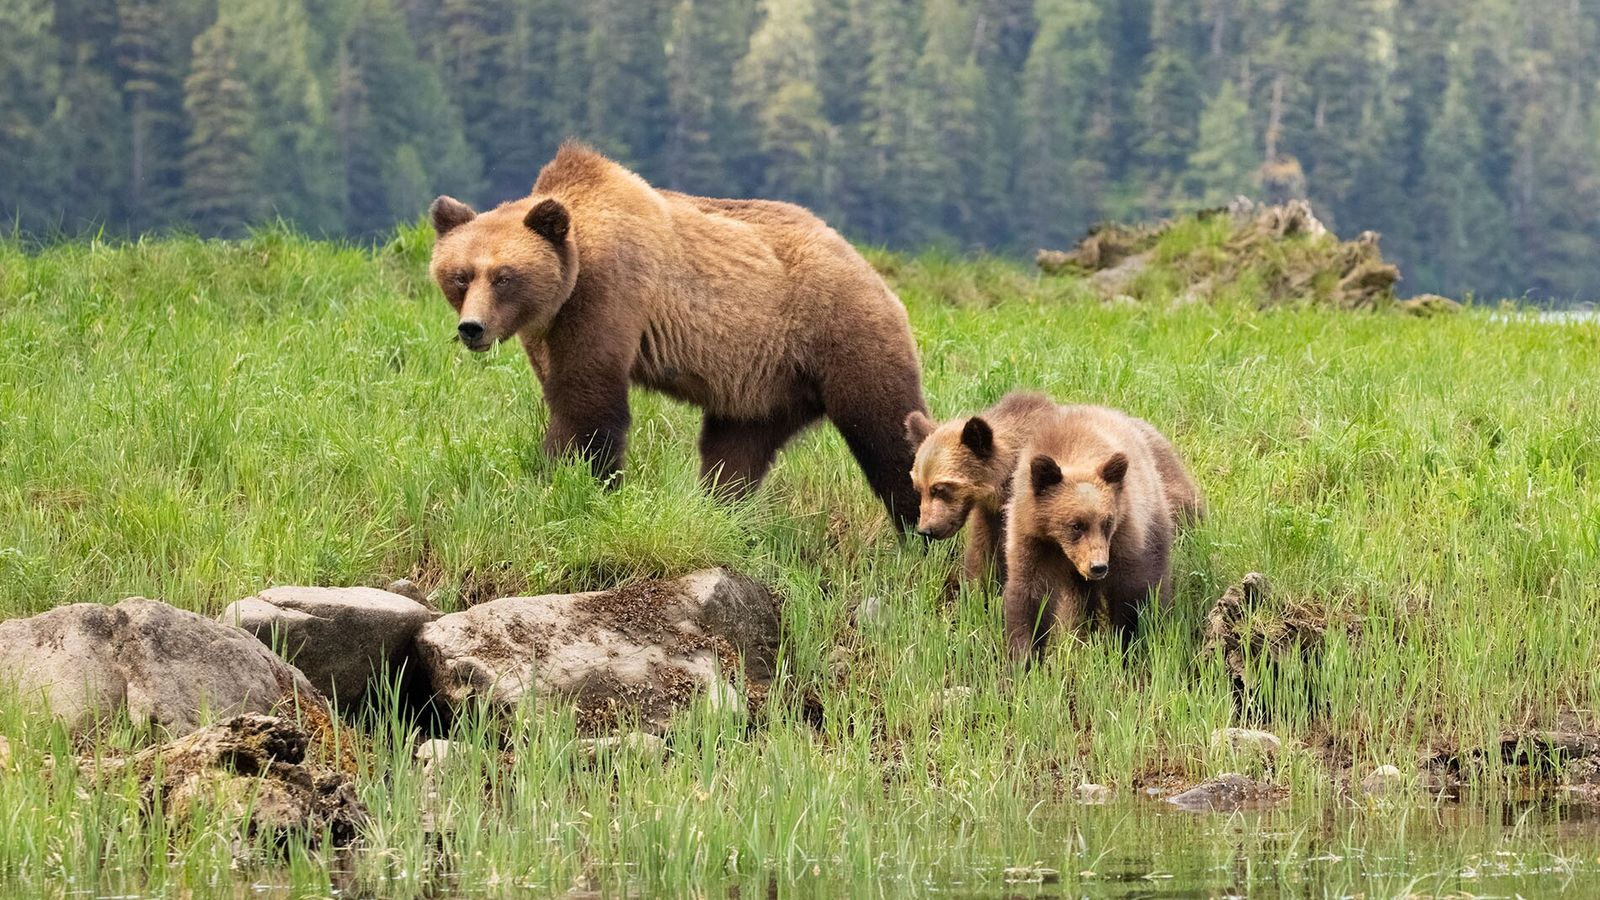 The call of the wild: searching for grizzly bears and whales on British Columbia's Vancouver Island